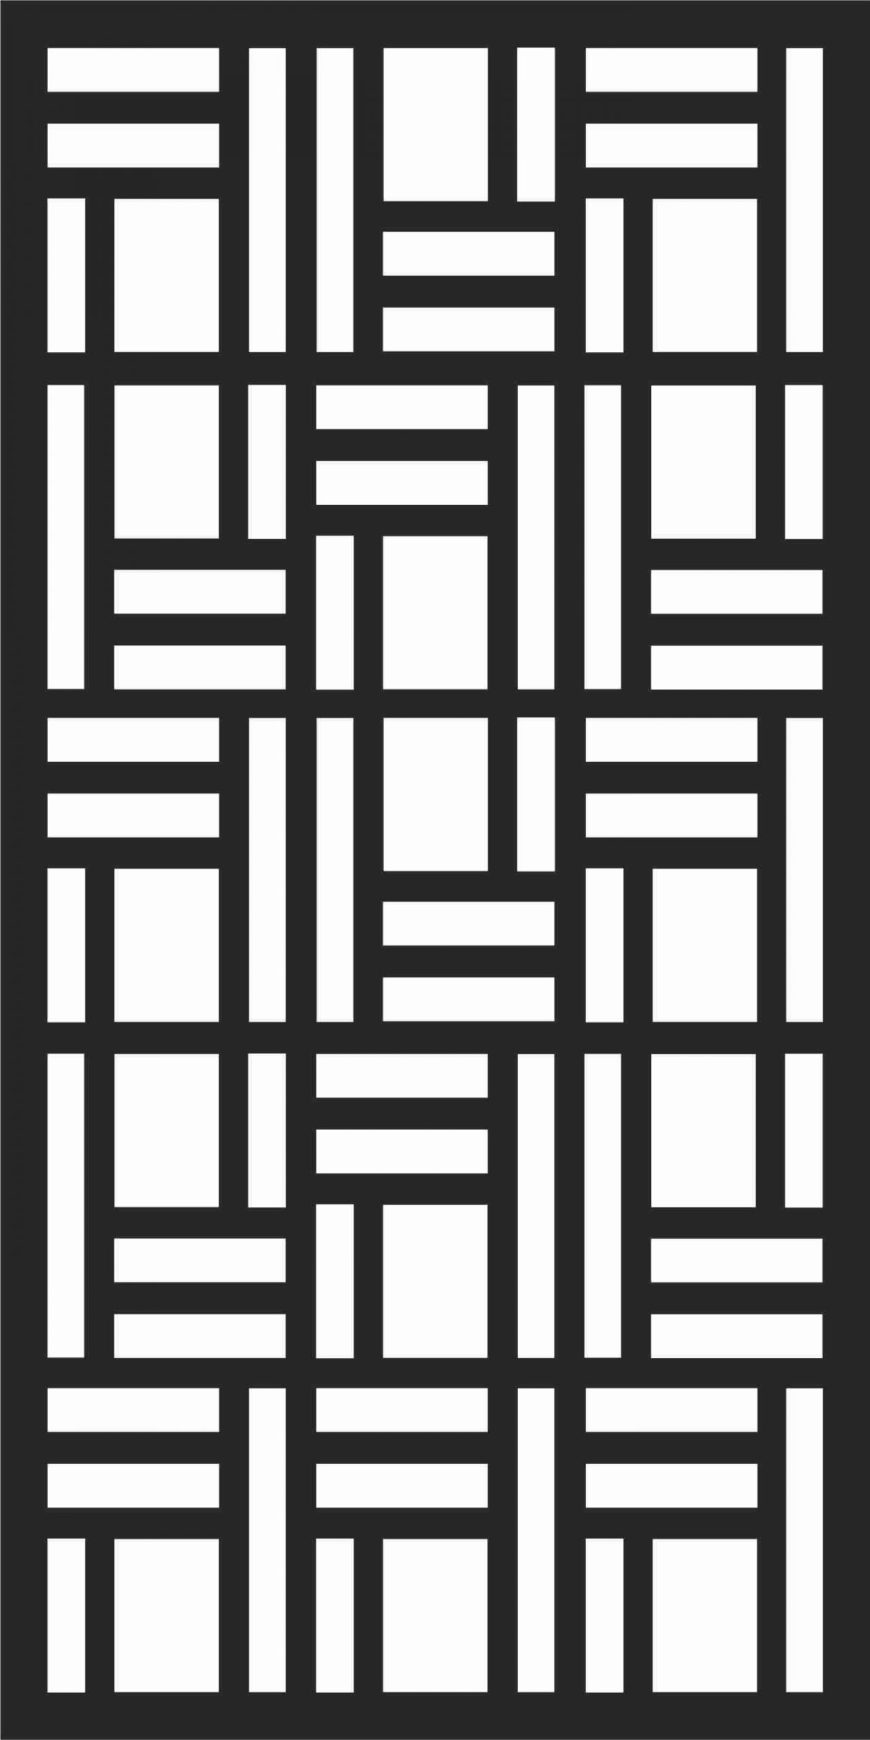 Decorative Screen Patterns For Laser Cutting 185 Free DXF File